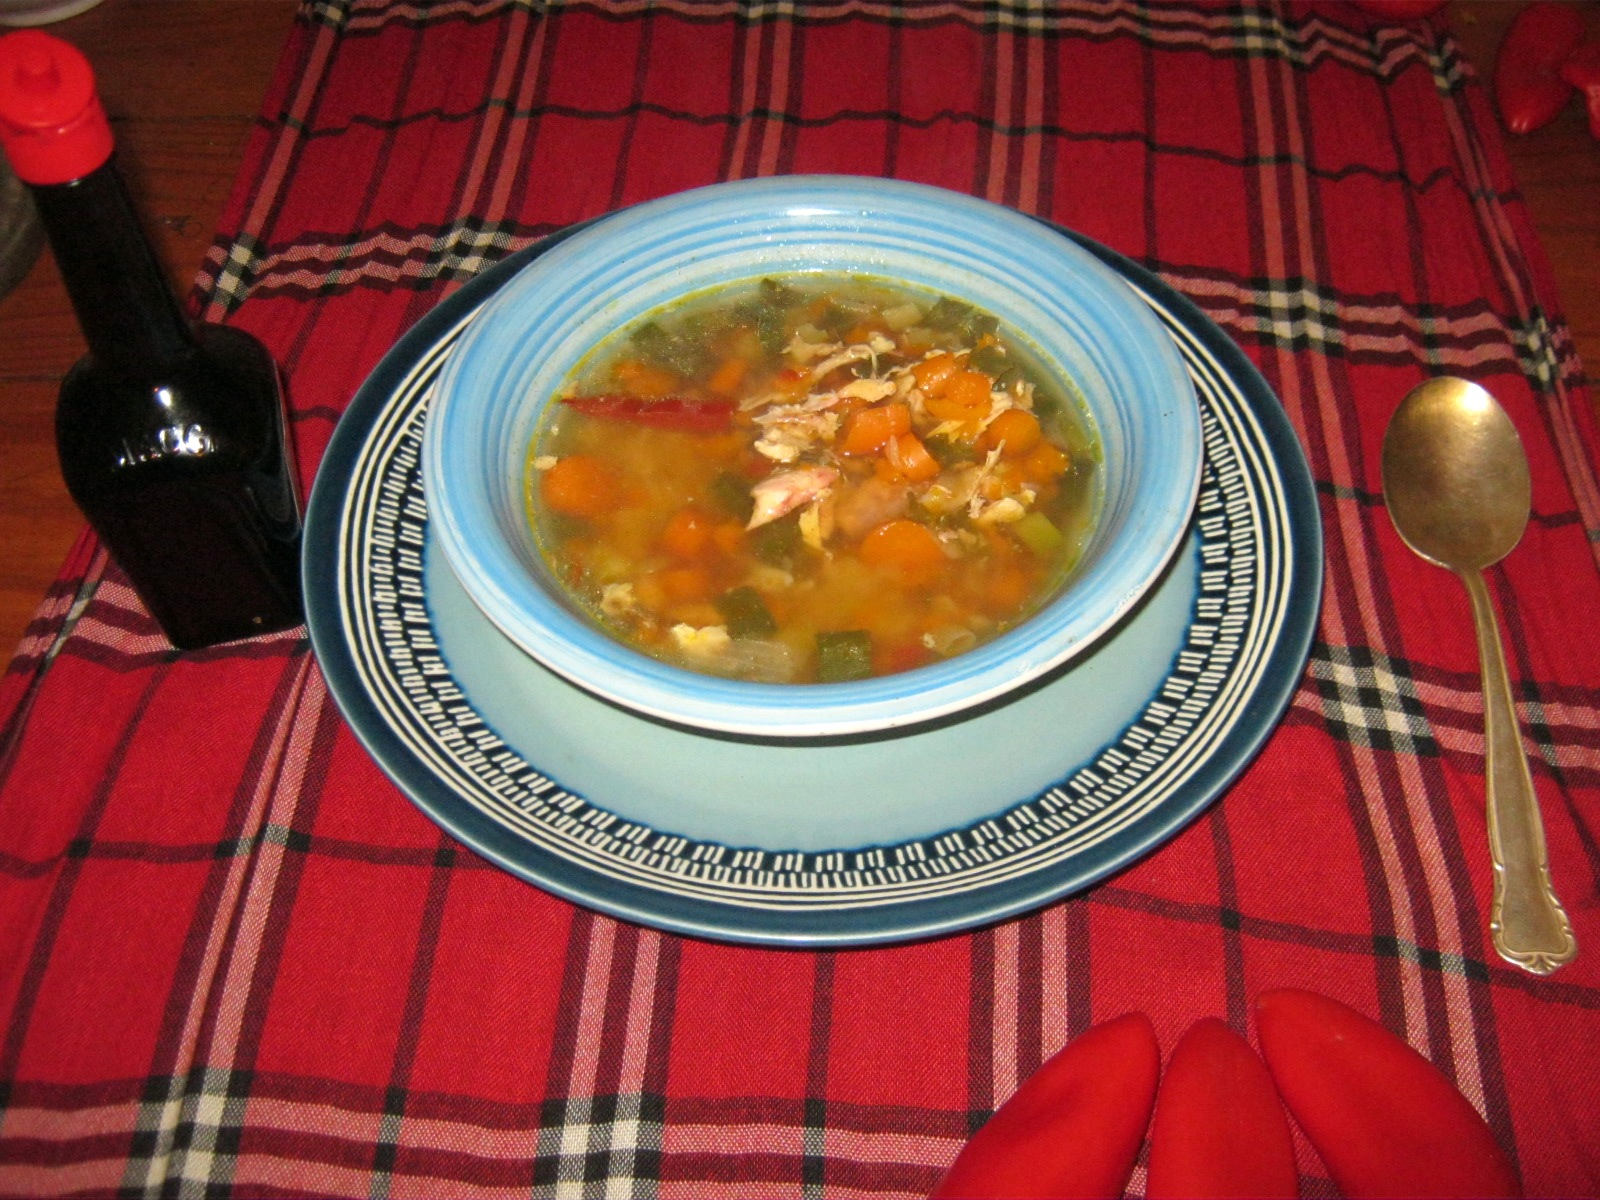 This chicken soup is great on cold winter days and to regain your strength once you are recovering from a cold.